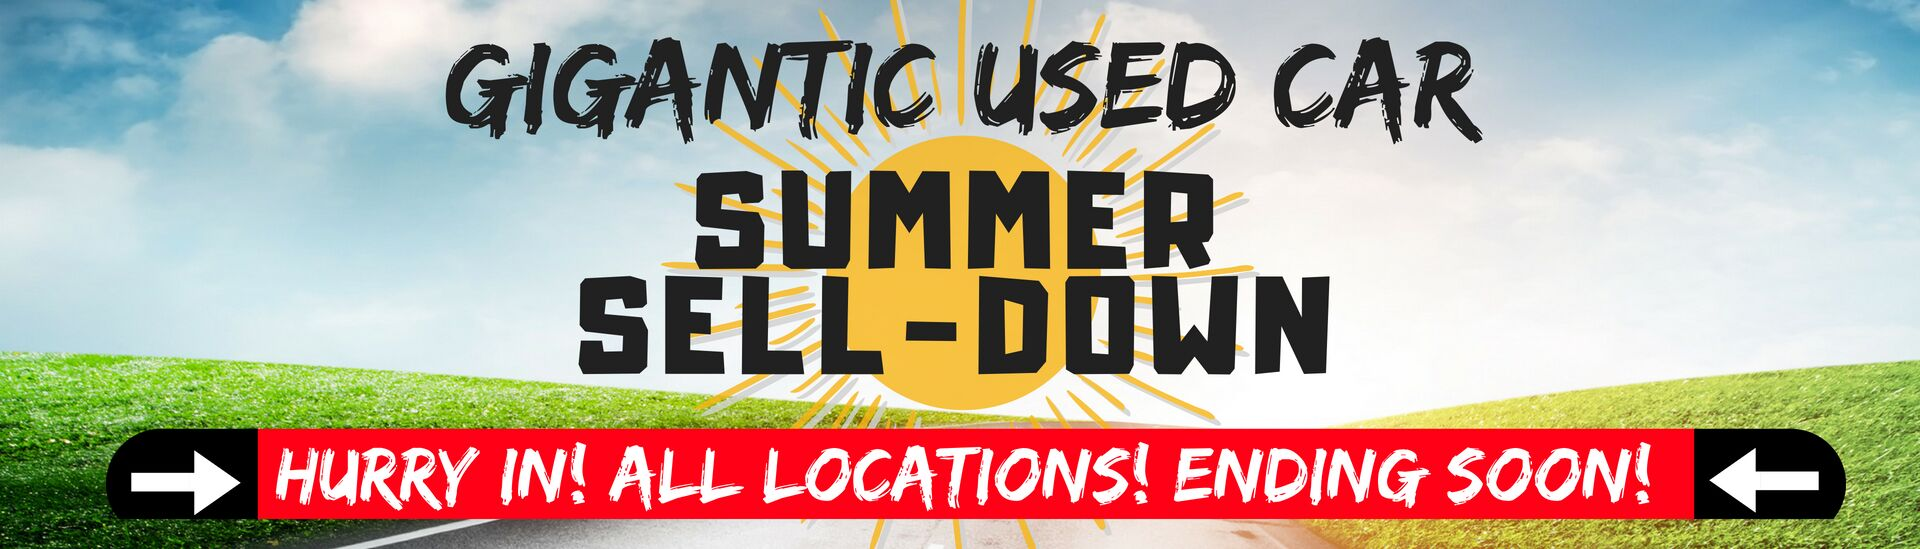 Used Car Summer Sell-Down!